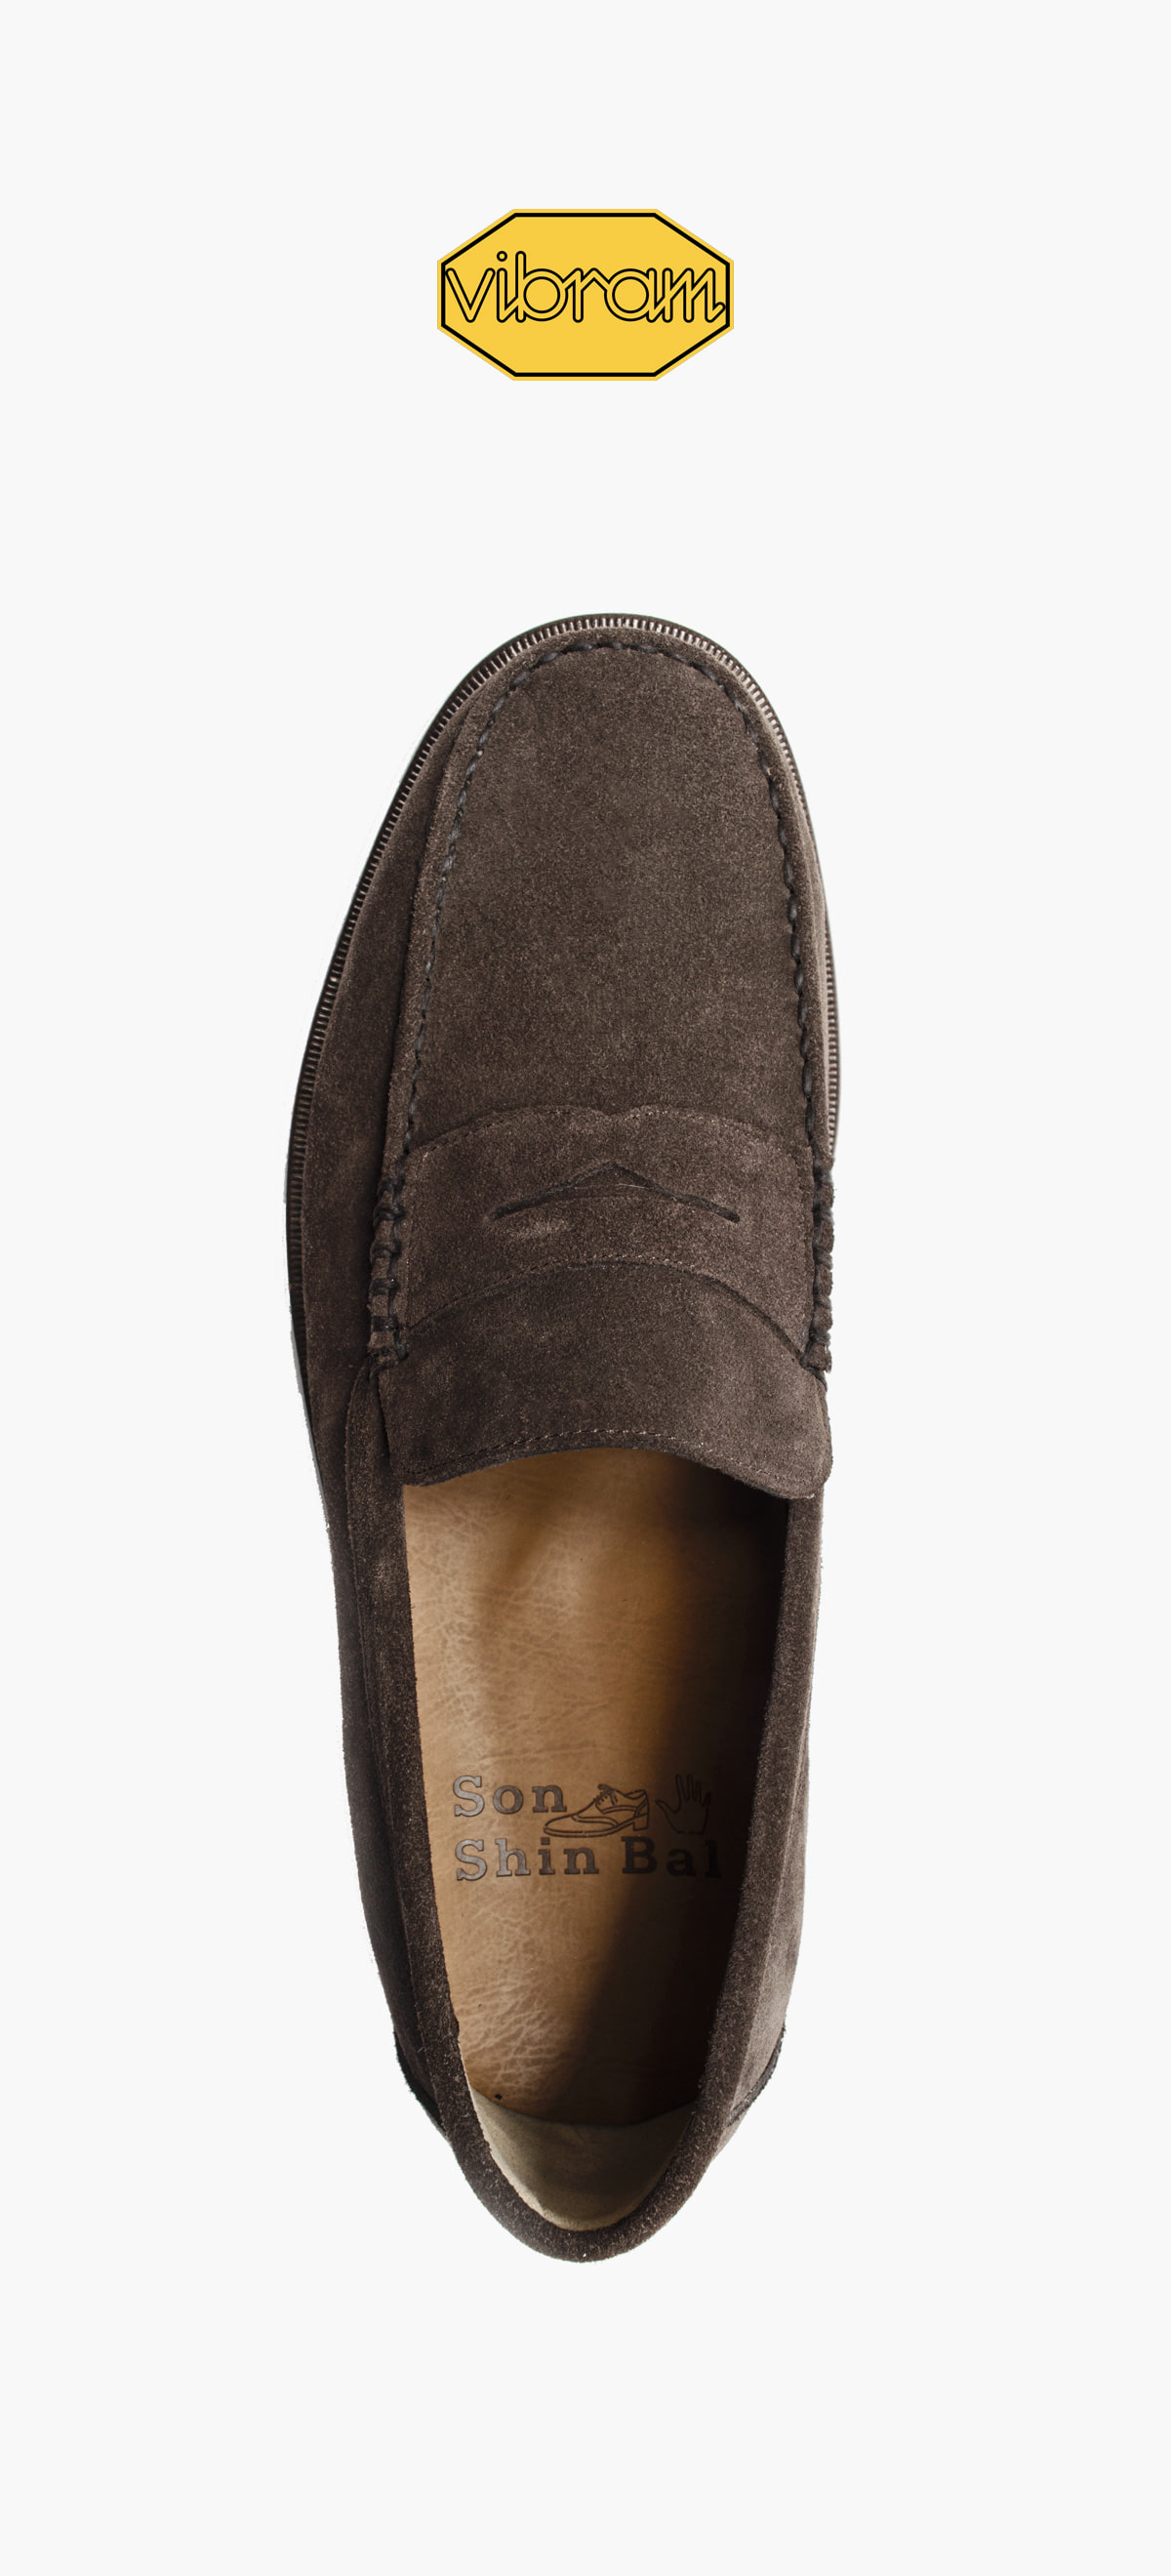 Penny Loafer 8012-01 Deep Brown Suede